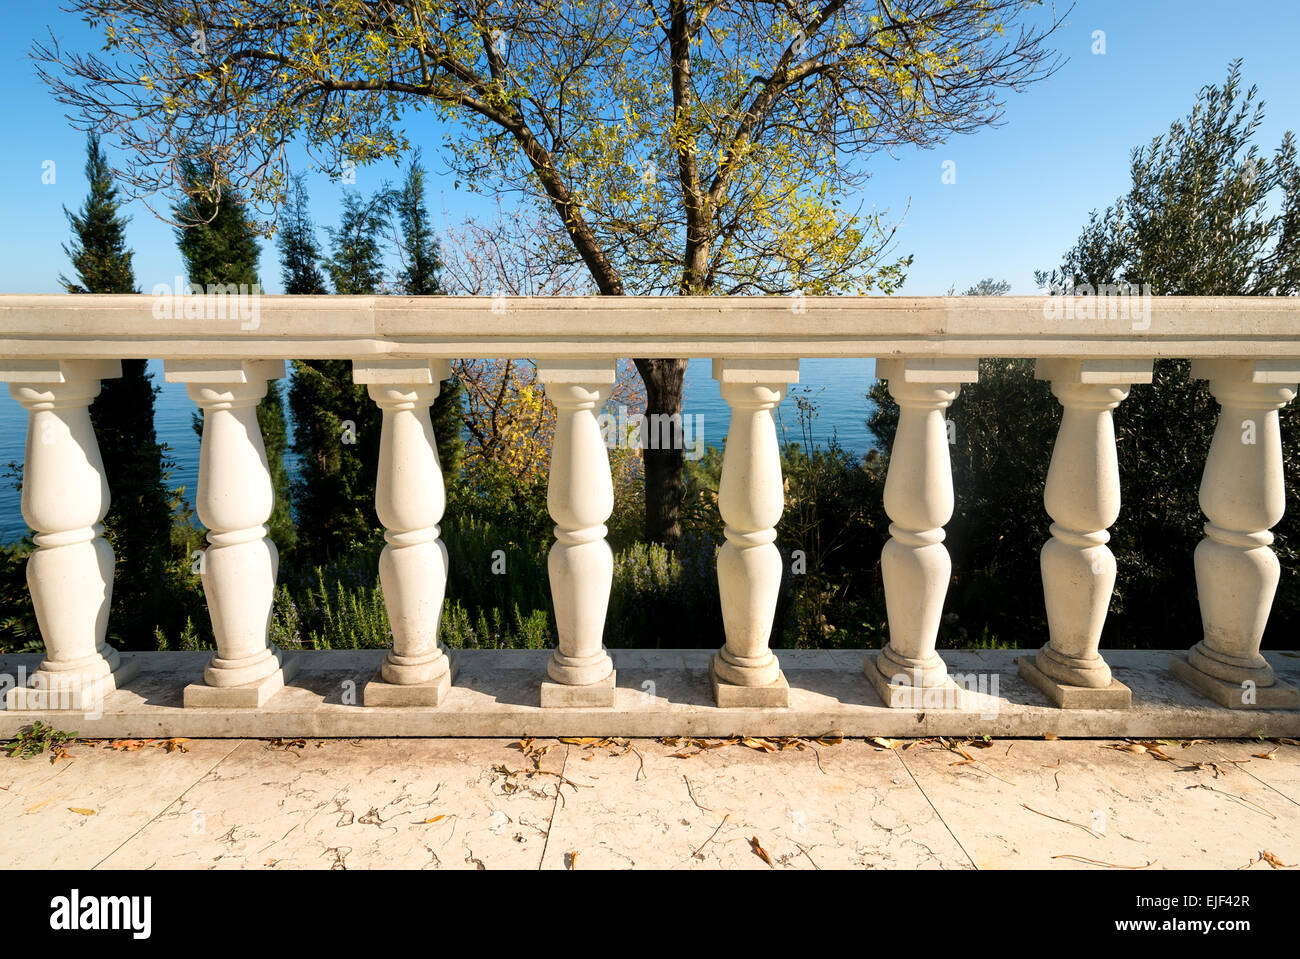 Decorative columns on a viewpoint deck near sea - Stock Image